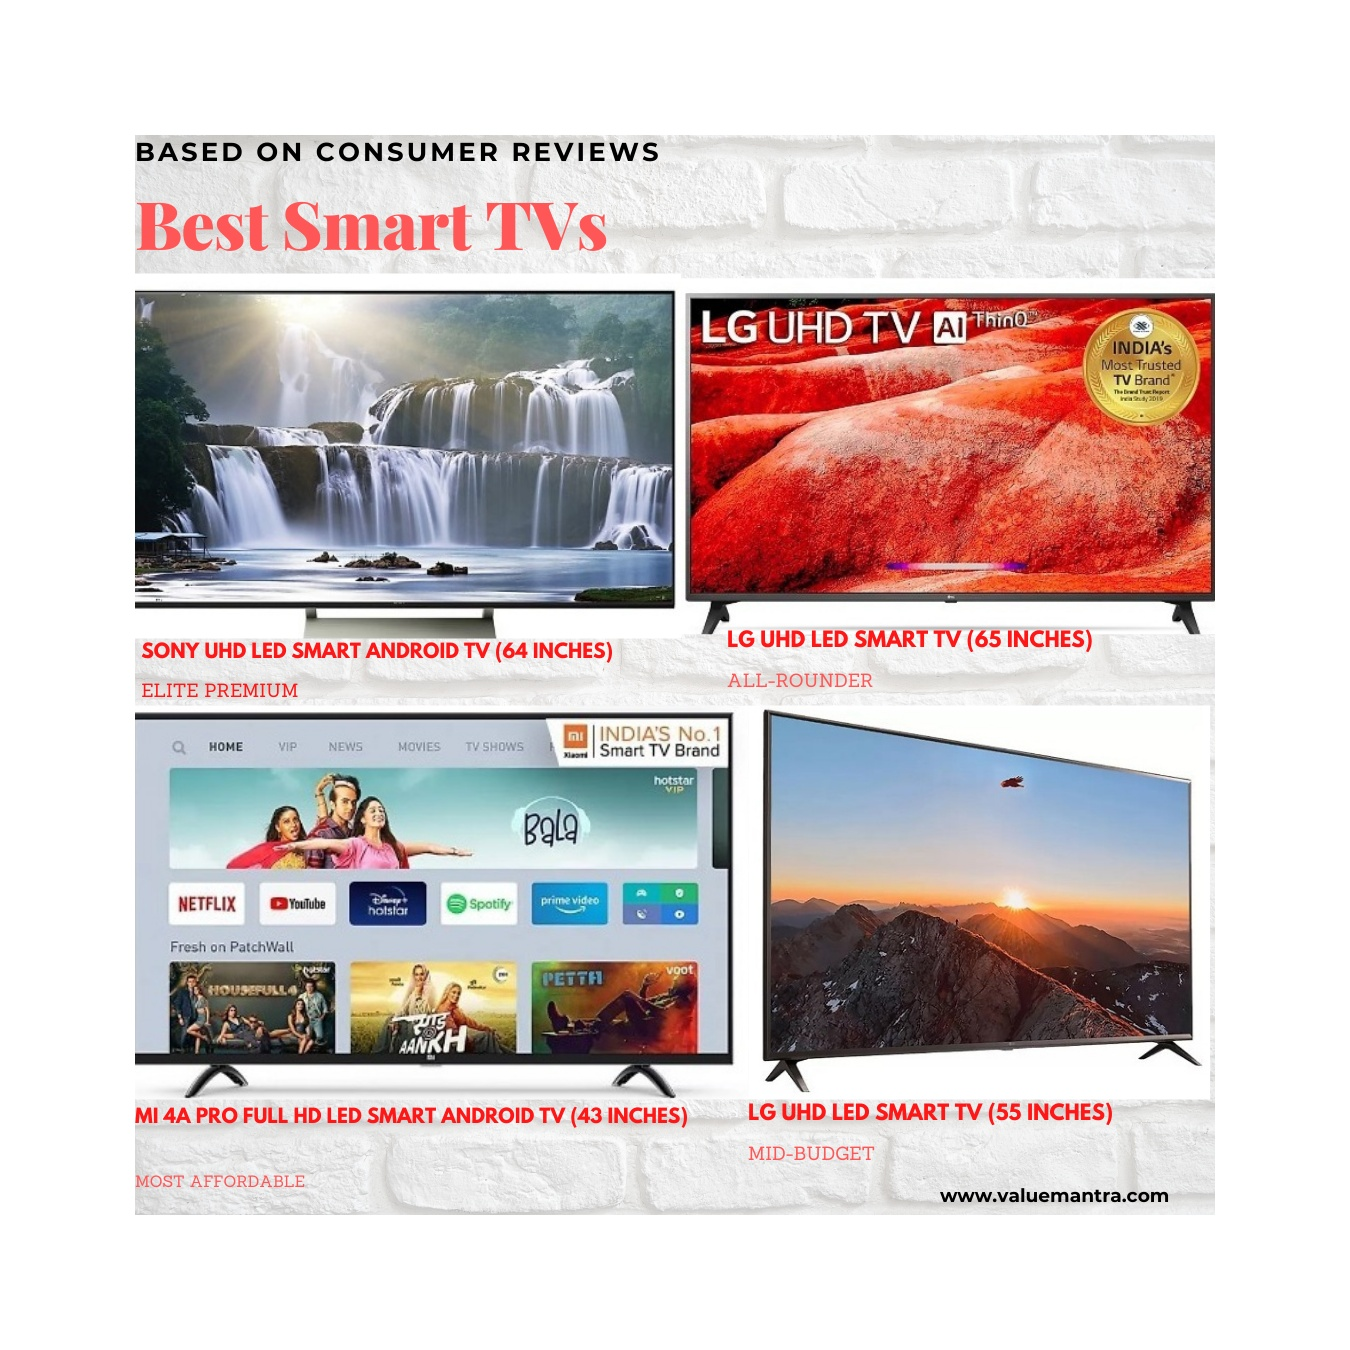 The Best Smart TV : Prices, Specifications & more